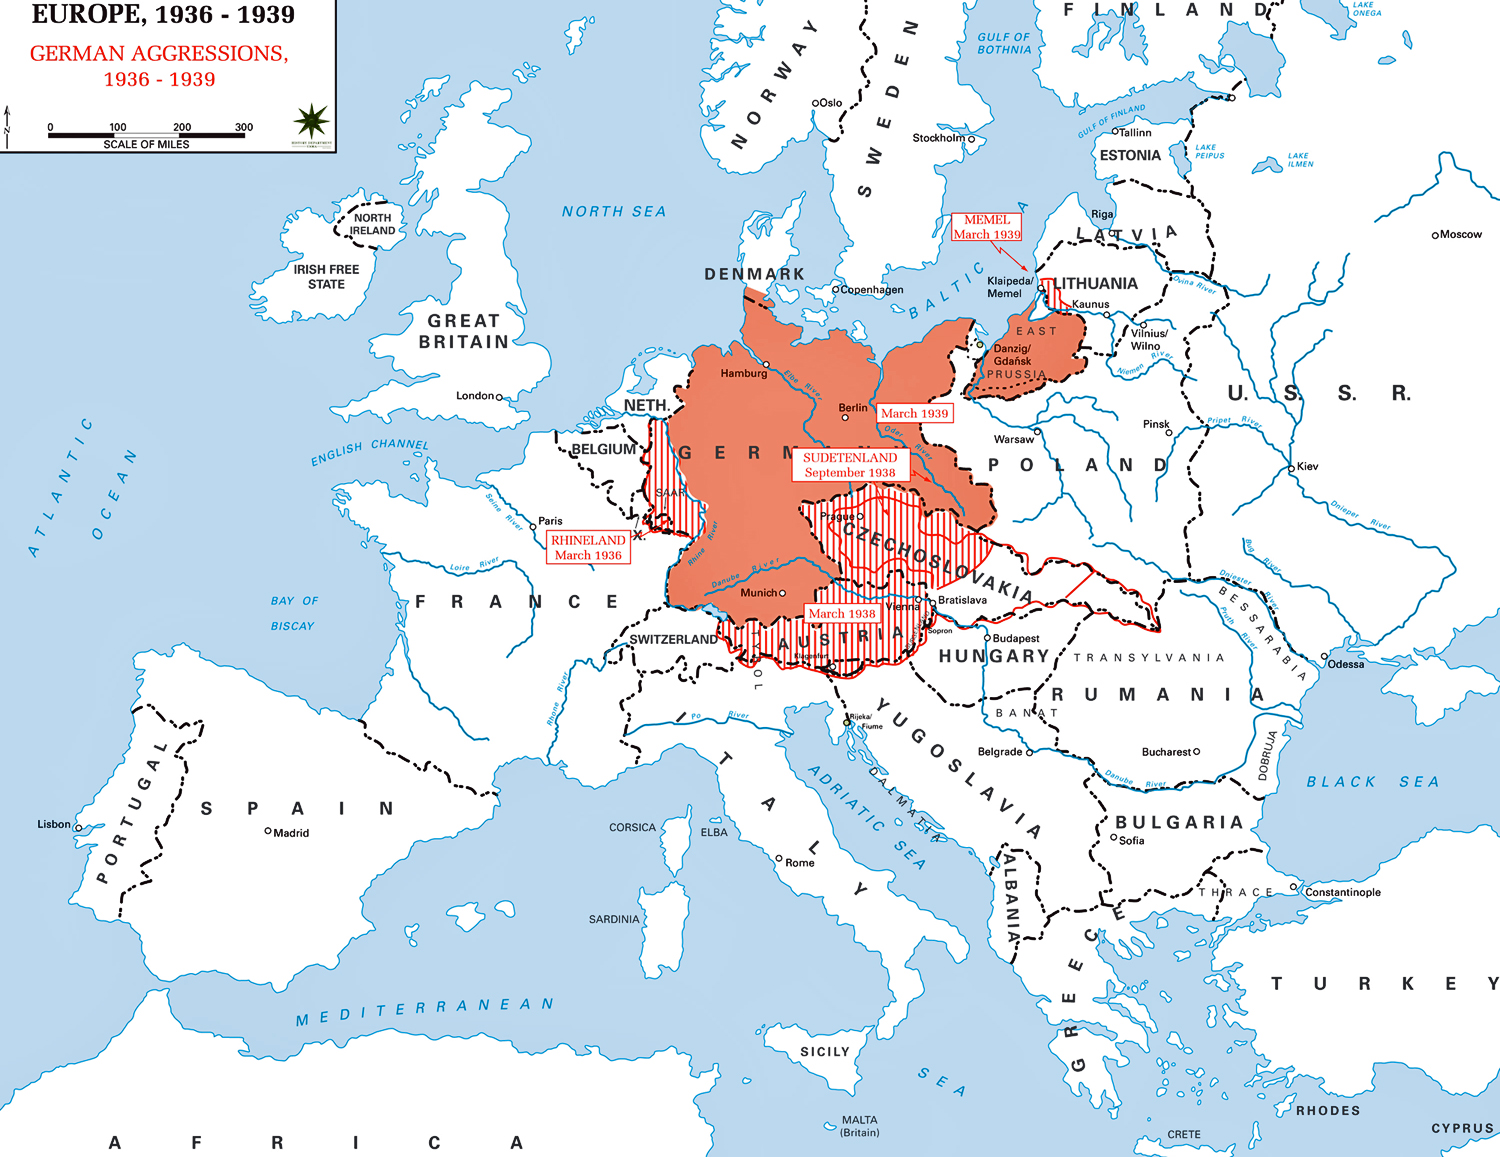 Map of europe 1936 1939 wwii timelines map of europe 1936 1939 german aggressions gumiabroncs Choice Image